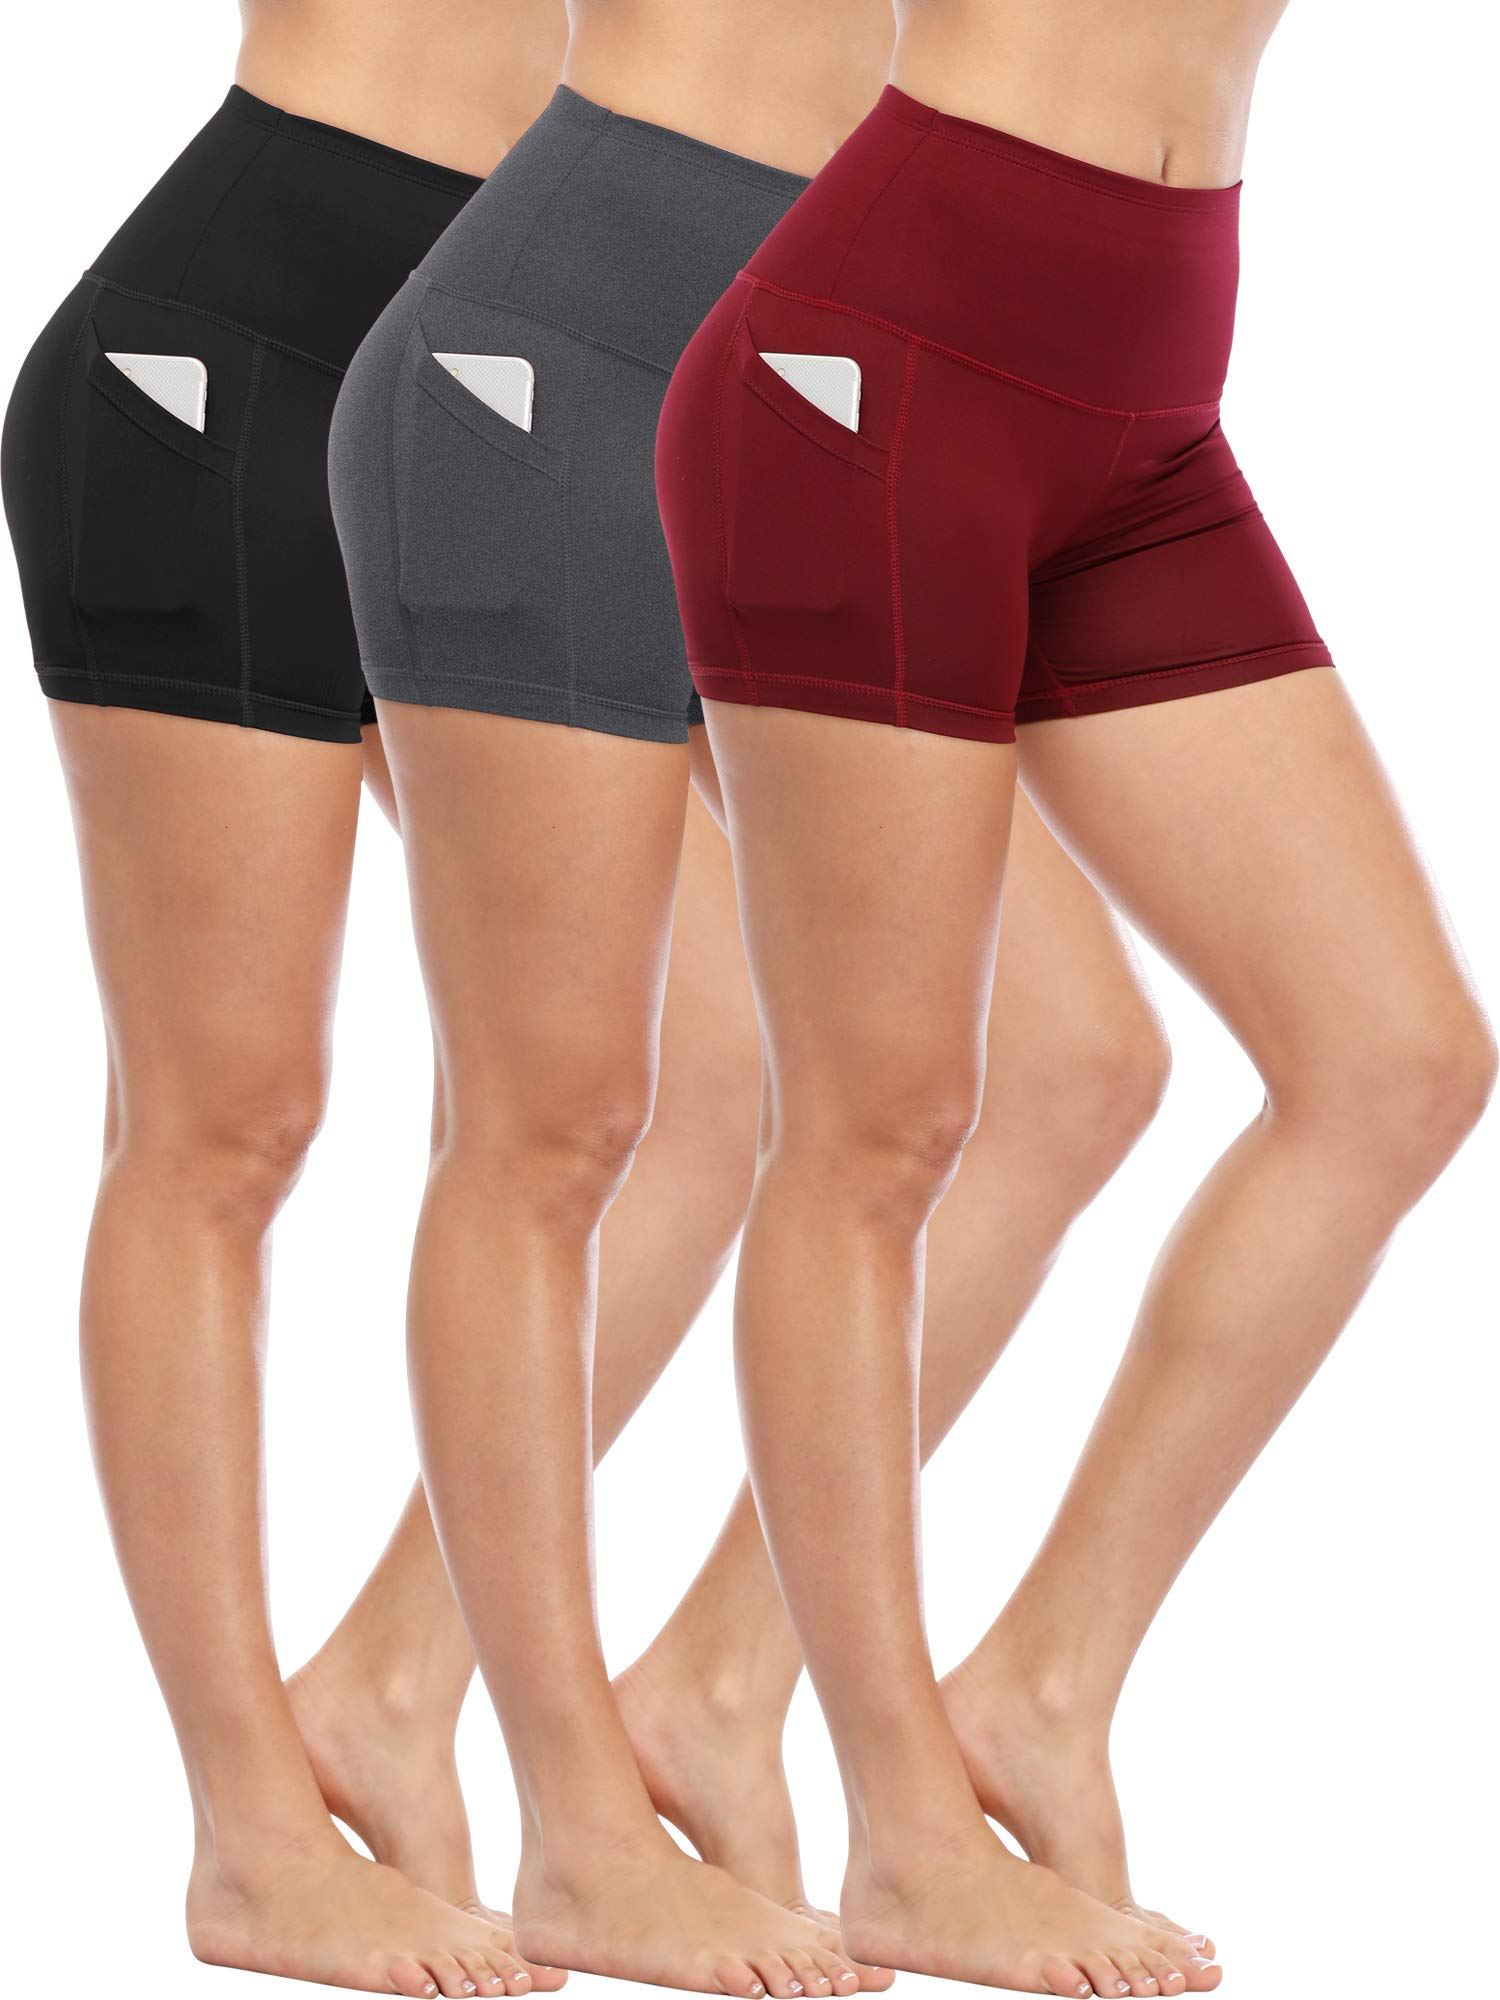 Cadmus Women's Tummy Control Workout Running Short Out Pocket,3 Pack,1016,Black & Grey & Wine Red,X-Small by Cadmus